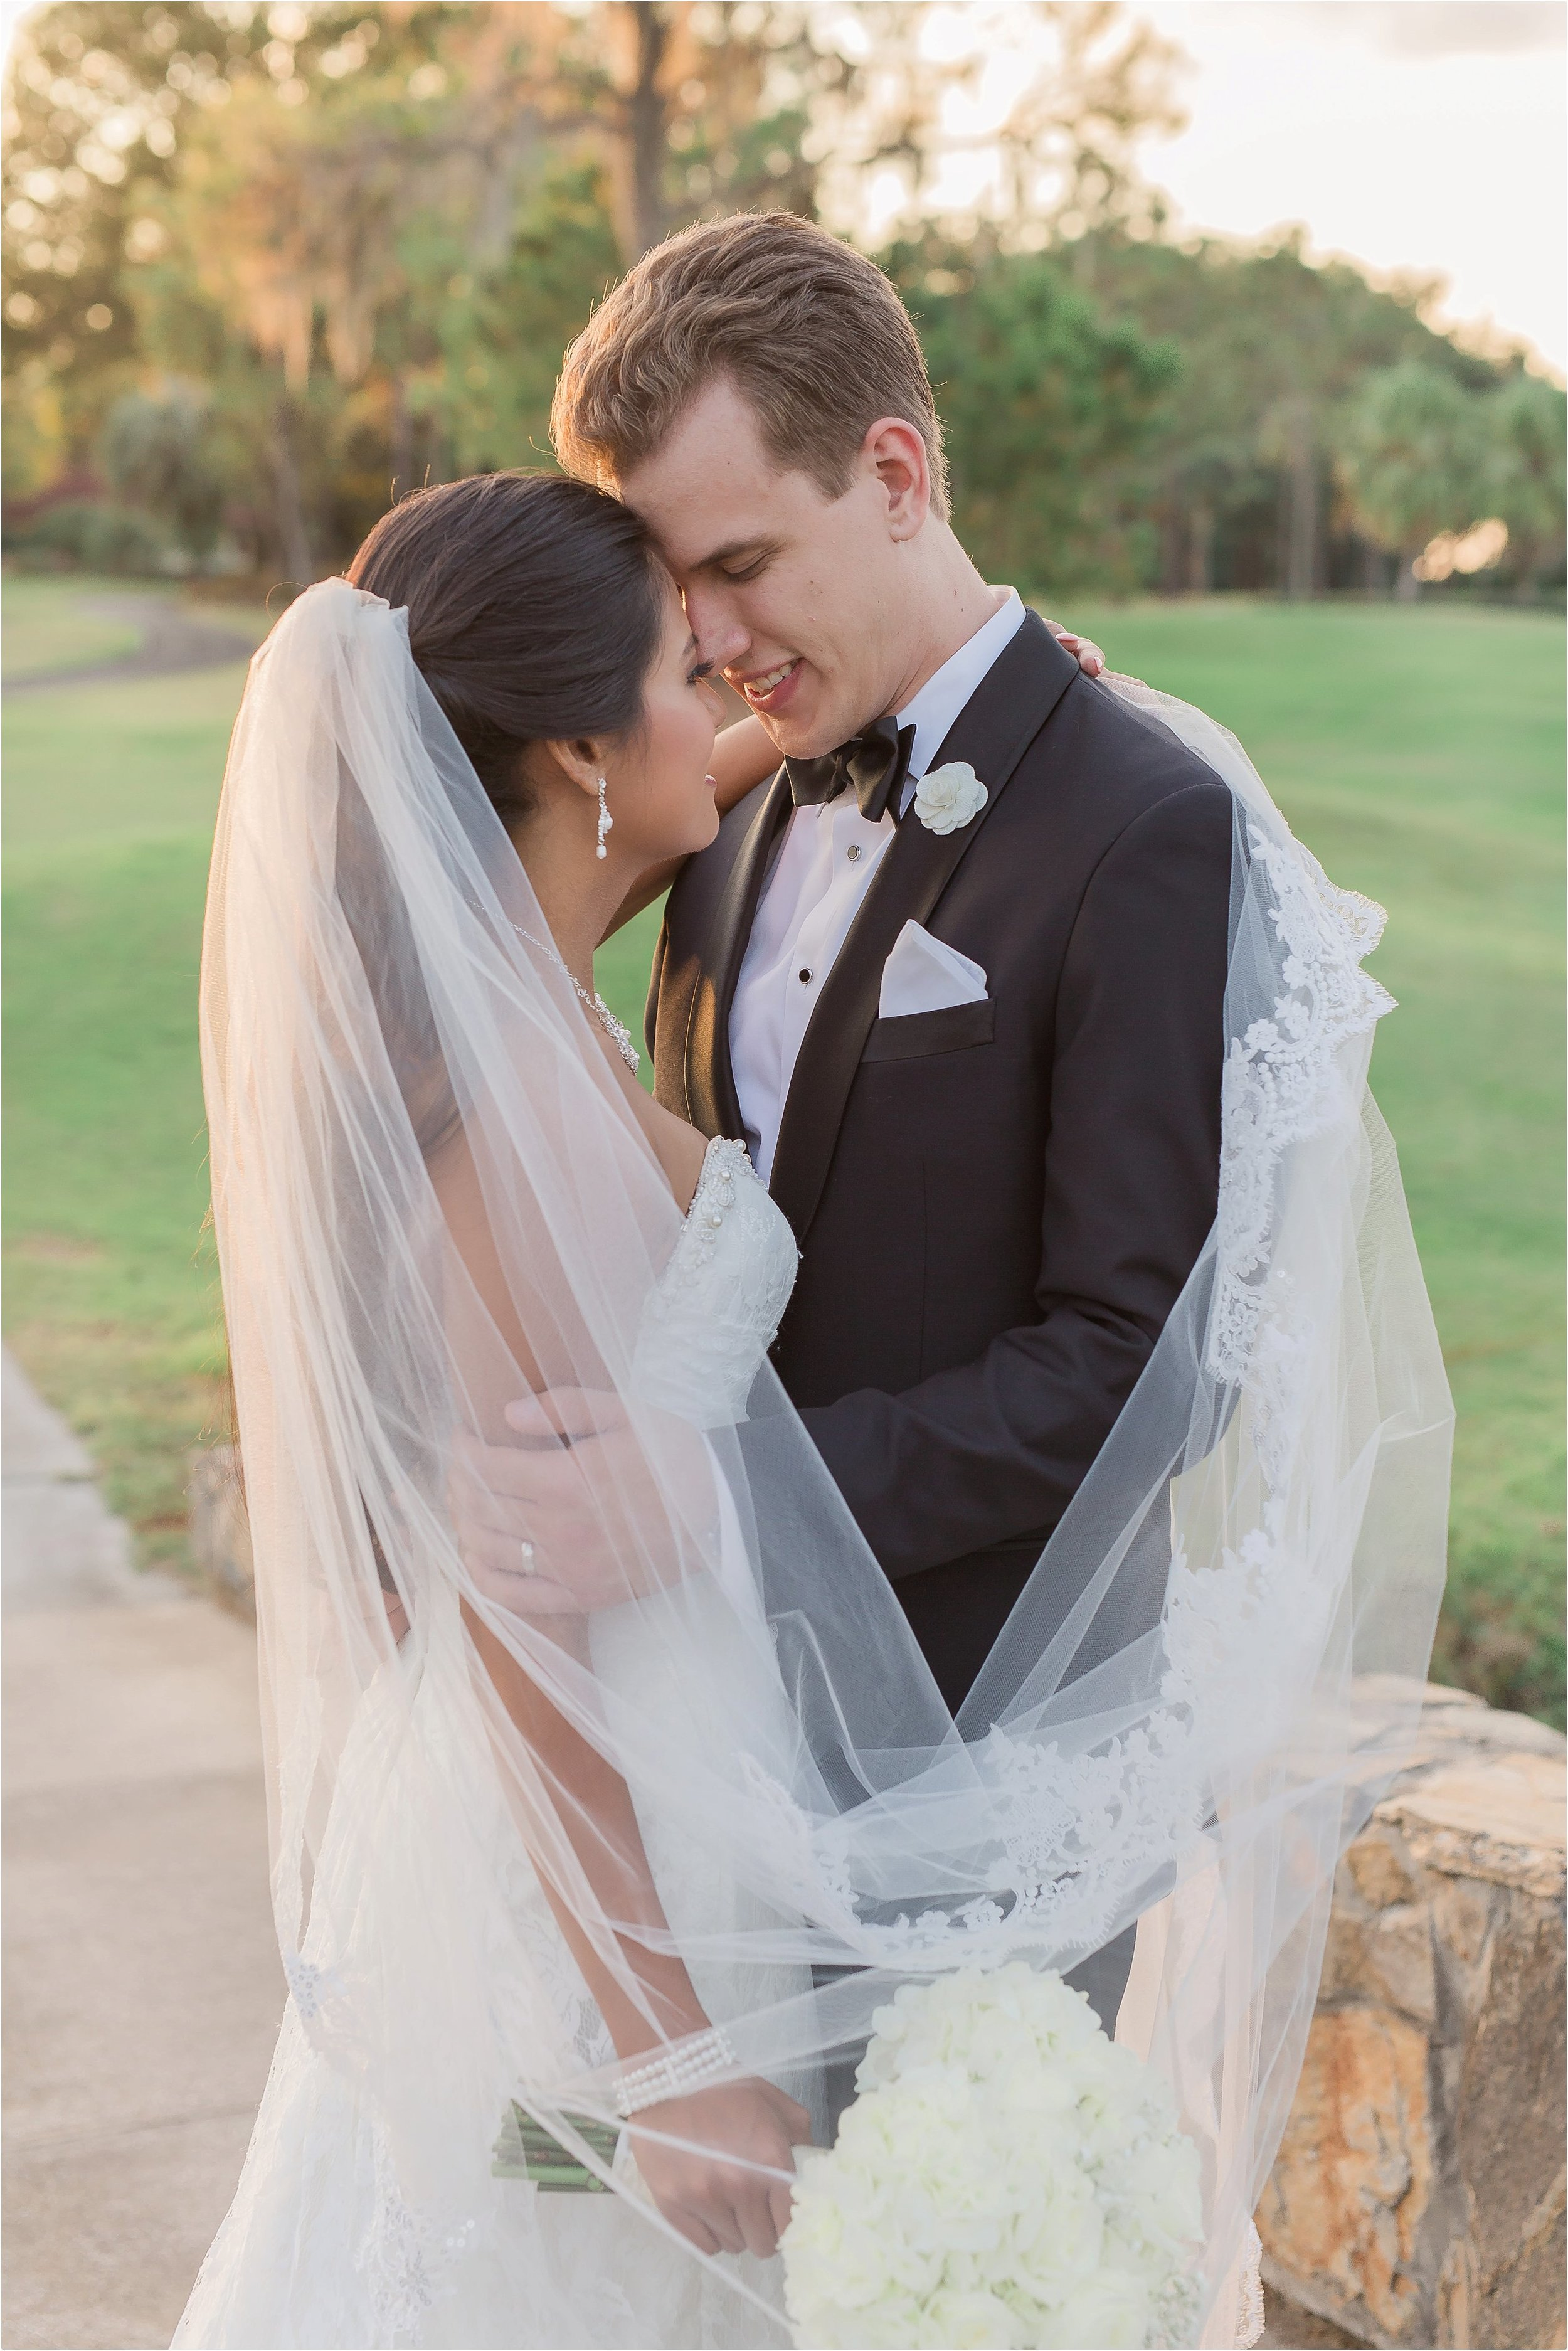 Gorgeous Lighting and Romantic Bride and Groom Portraits